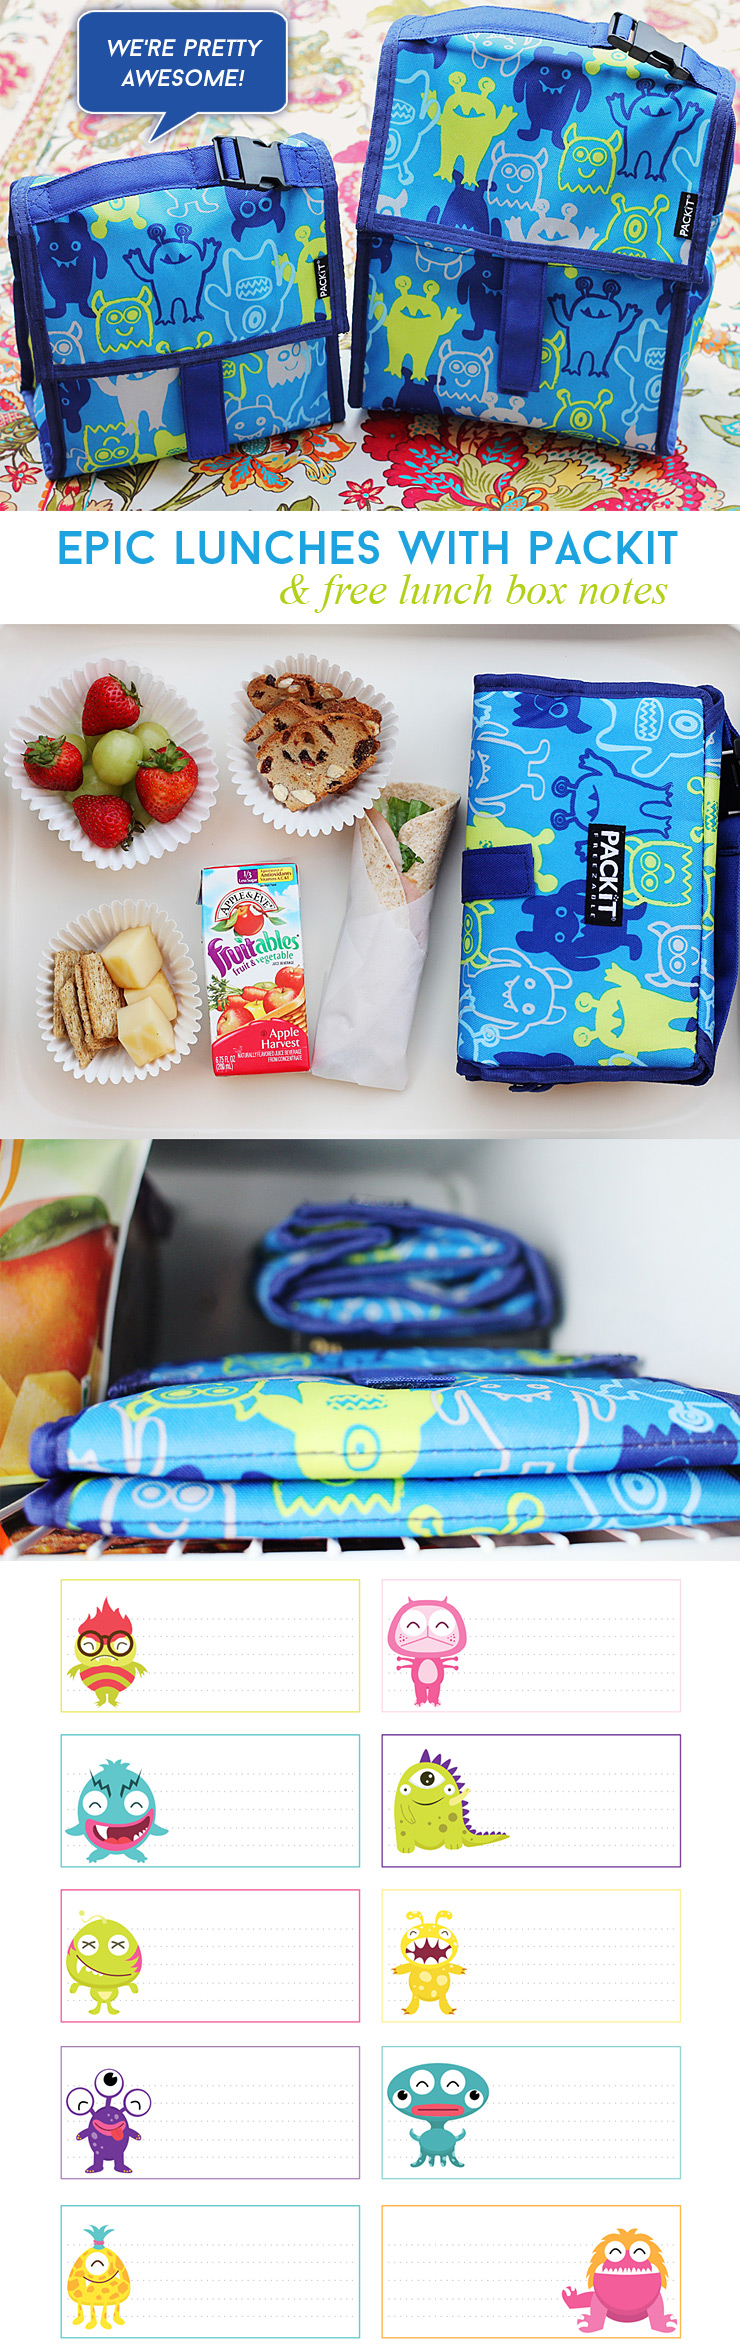 Such a cute lunch idea and adorable lunch box notes!